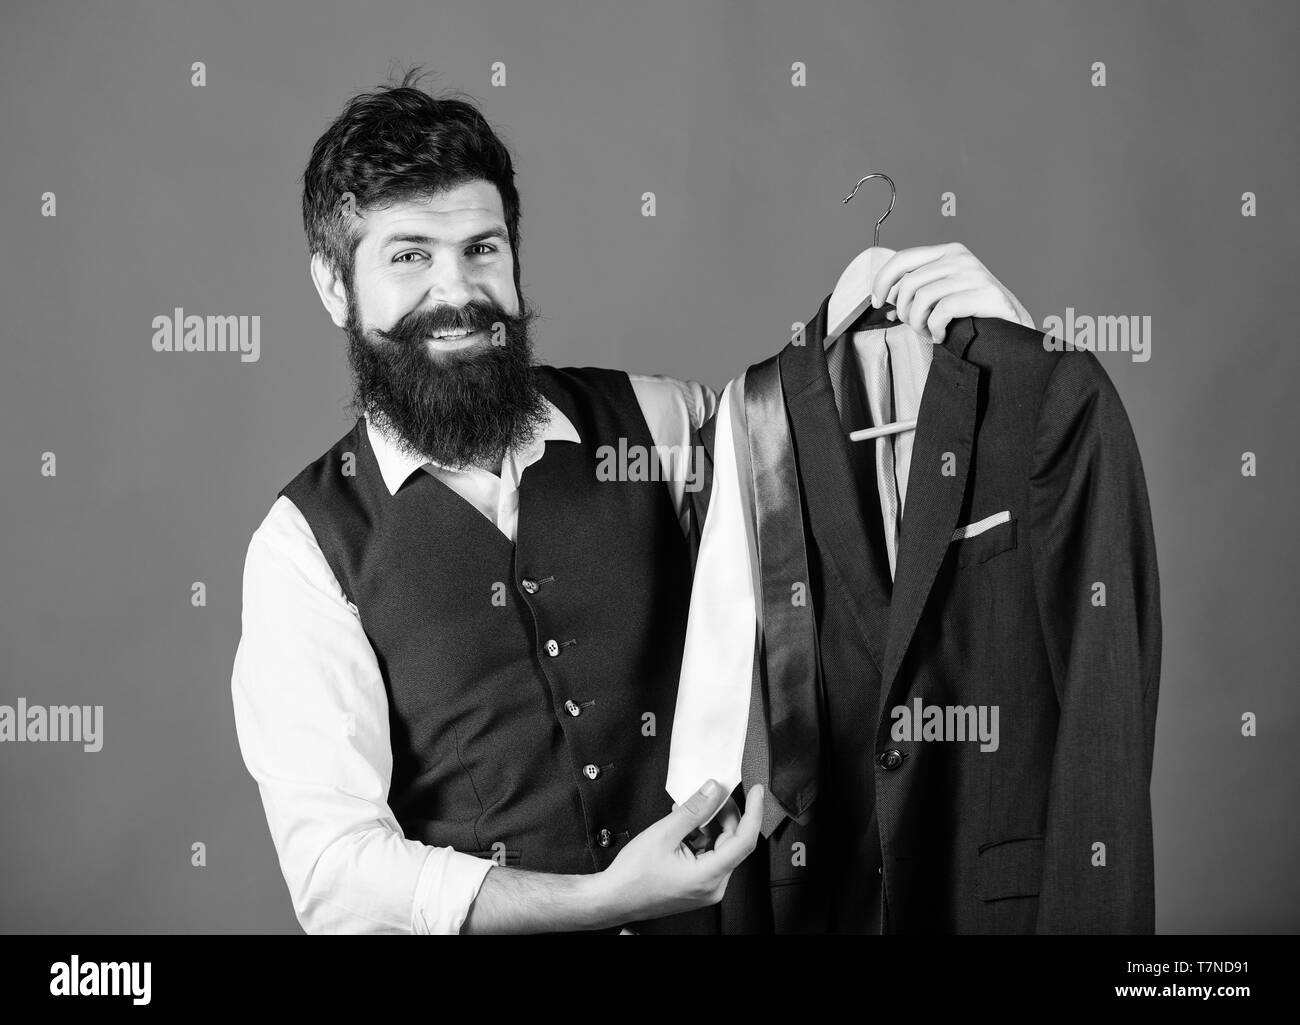 Shop assistant or personal stylist service. Matching necktie outfit. Man bearded hipster hold neckties and formal suit. Perfect necktie. Shopping concept. Stylist advice. Difficulty choosing necktie. - Stock Image